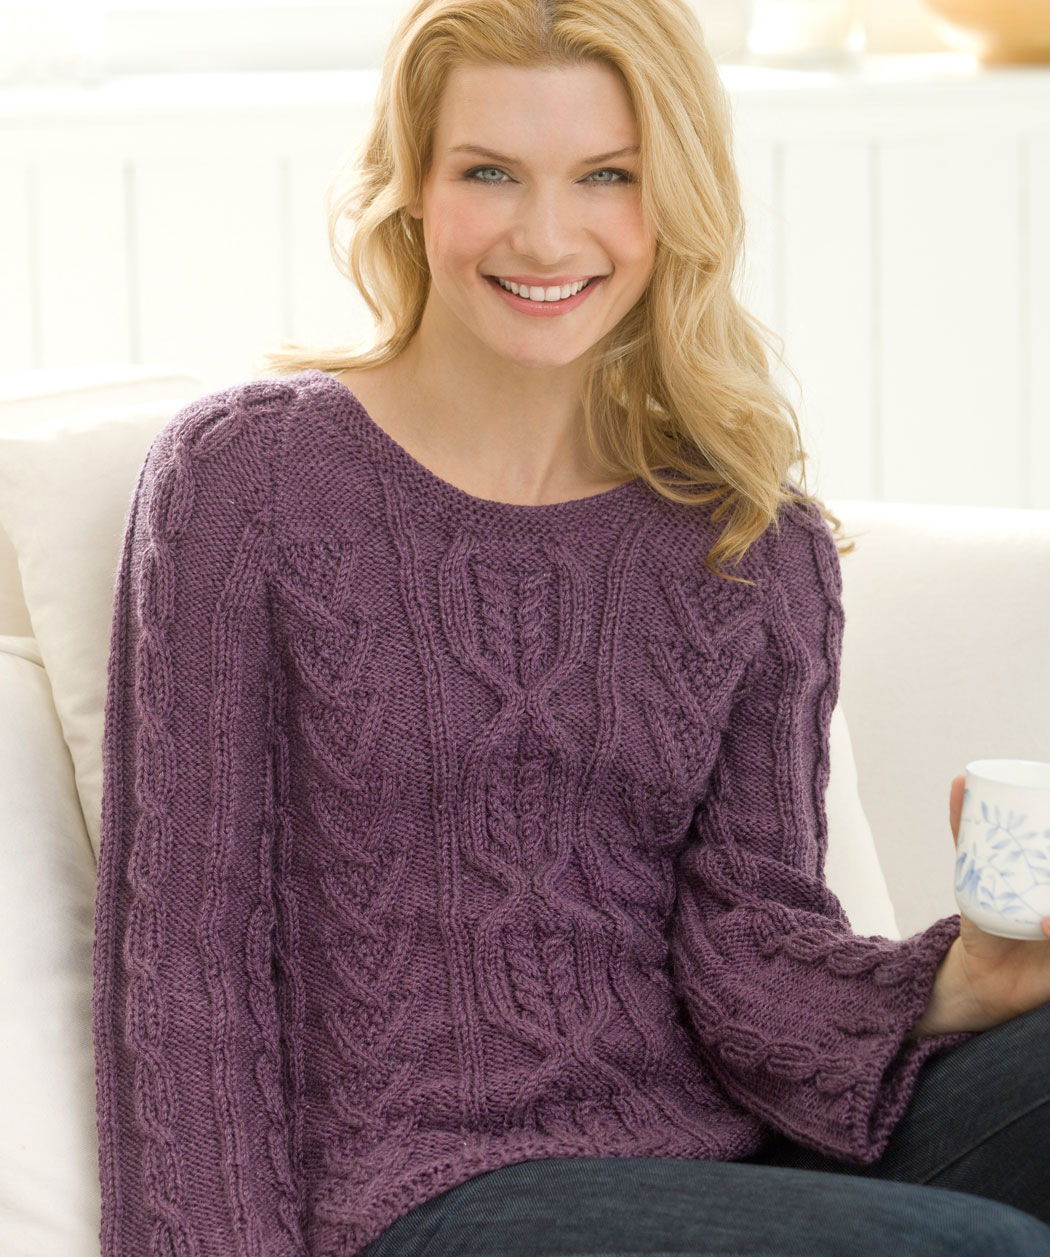 Sweater Knit : Cable knit sweater patterns a knitting